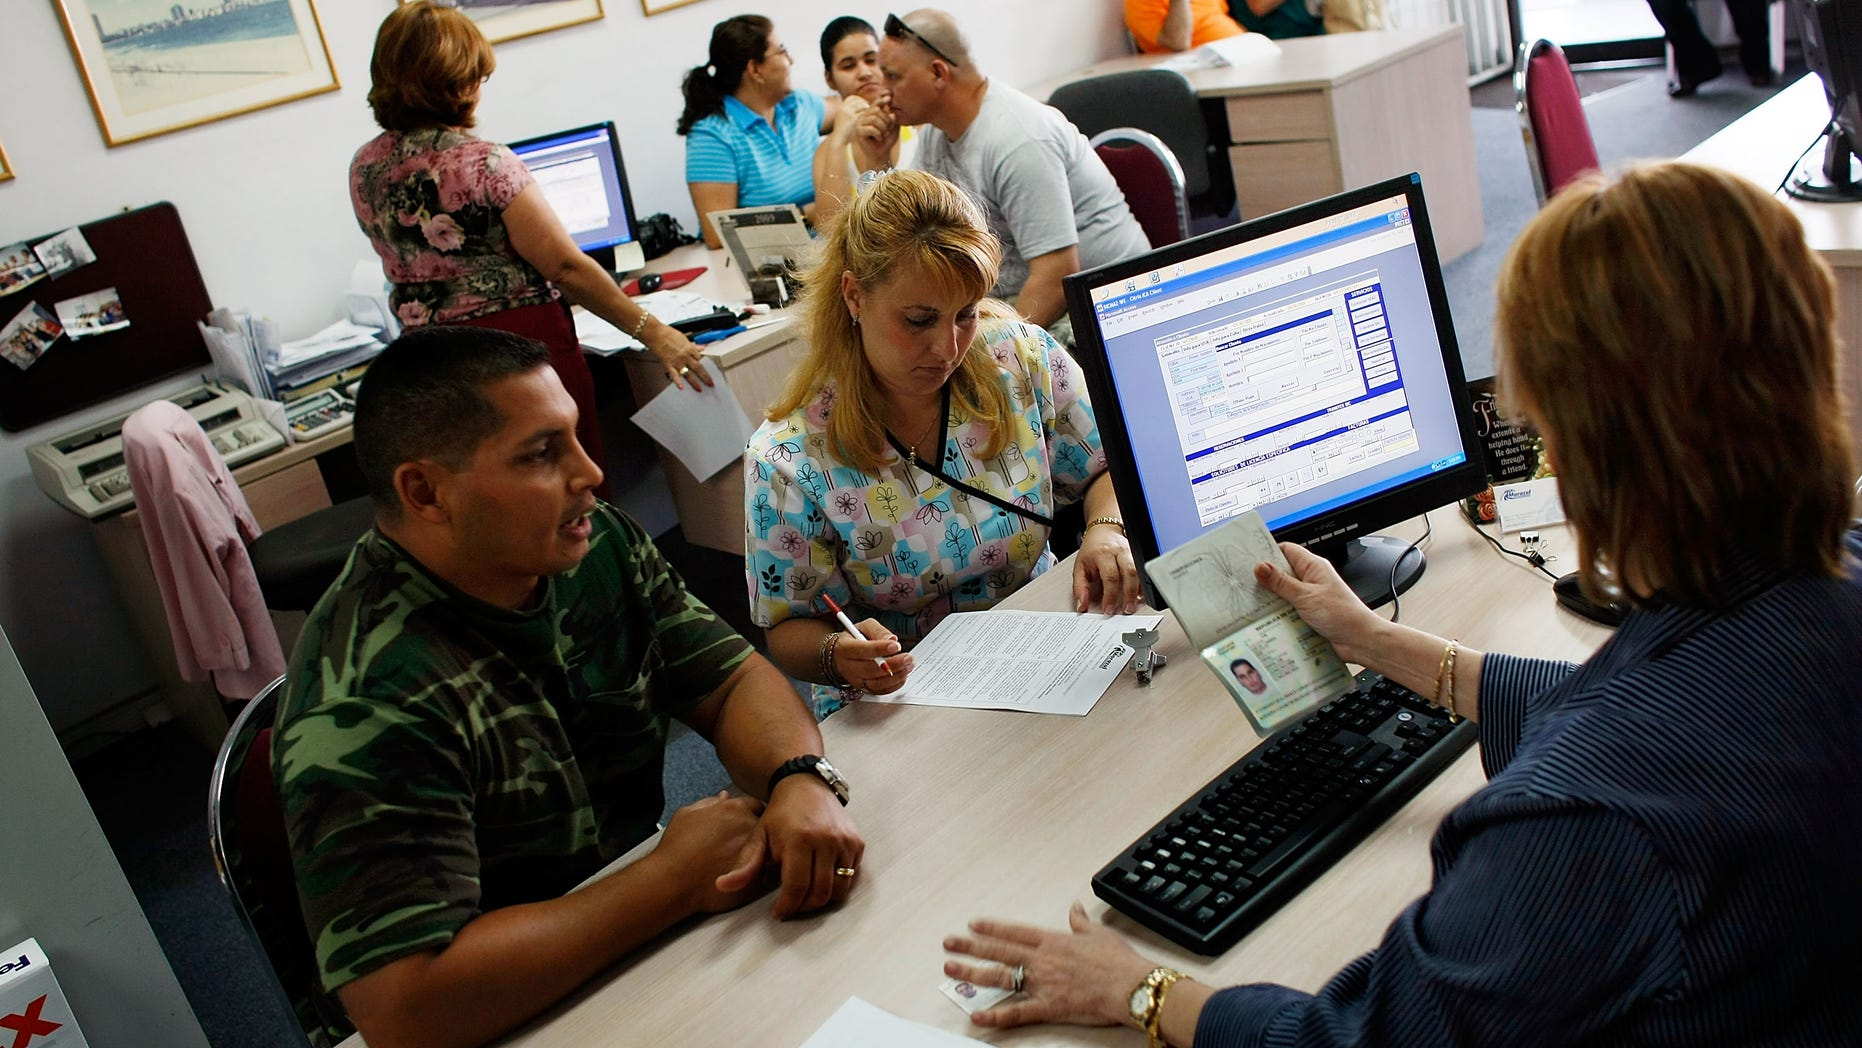 MIAMI - APRIL 13:  Omar Garcia (L) and Giselle Bordin purchase tickets to Cuba from travel agent Marizela Somosa in the offices of Marazul Charters on April 13, 2009 in Miami, Florida. Today, U.S. President Barack Obama  loosened travel restrictions for Cuban Americans traveling to Cuba as well as money transfers to the island.  (Photo by Joe Raedle/Getty Images)